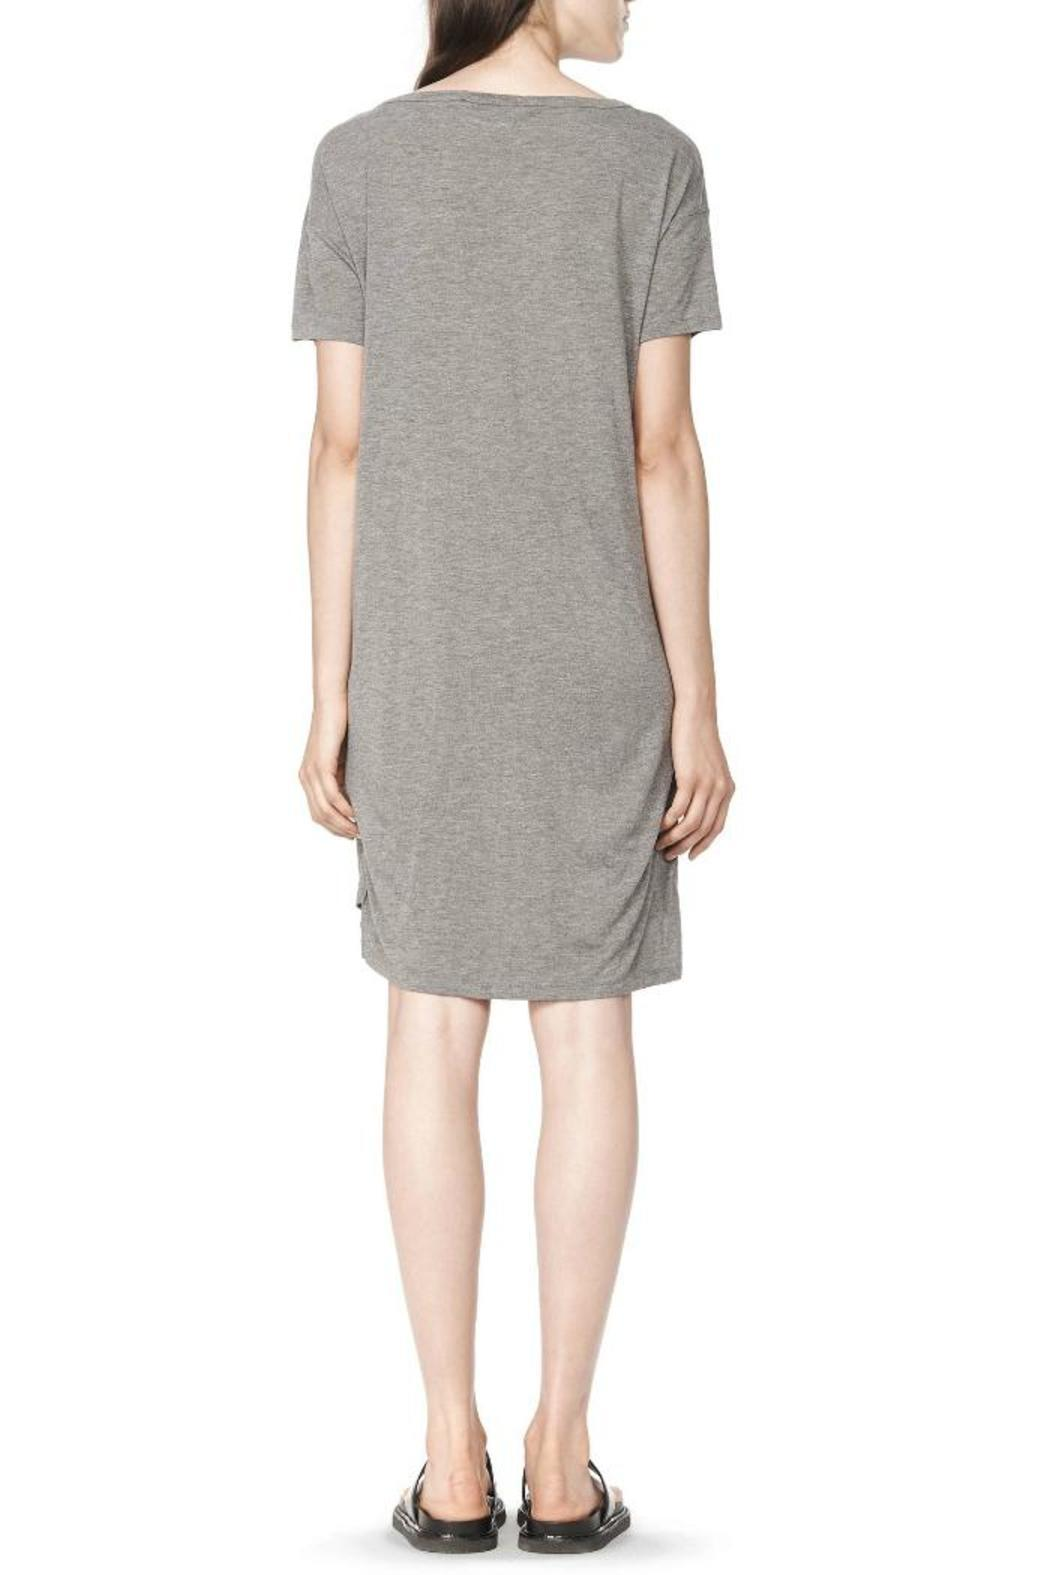 T by Alexander Wang Classic Boatneck Dress - Front Full Image